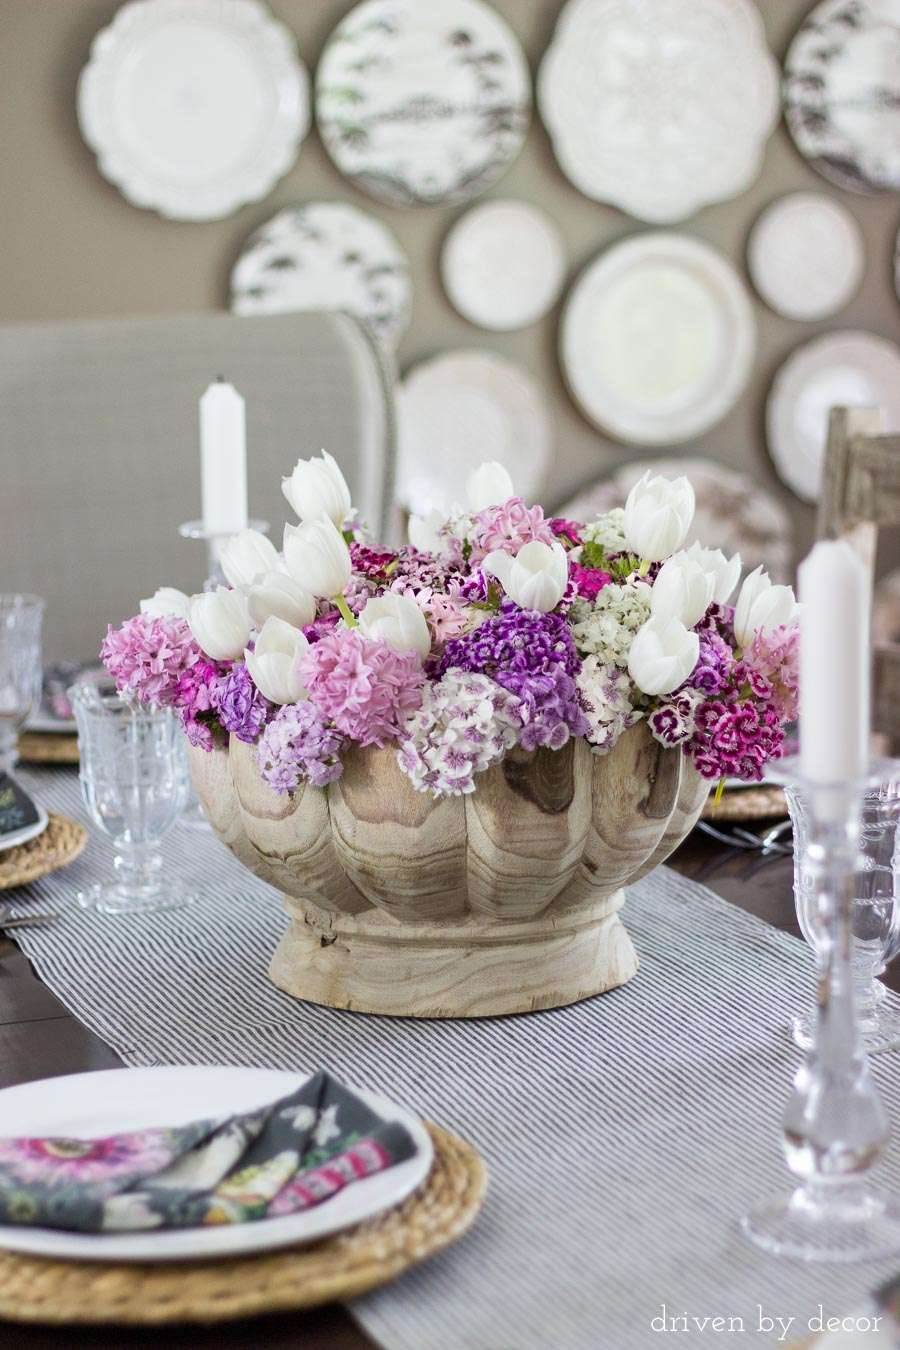 Gorgeous wood bowl as a table centerpiece